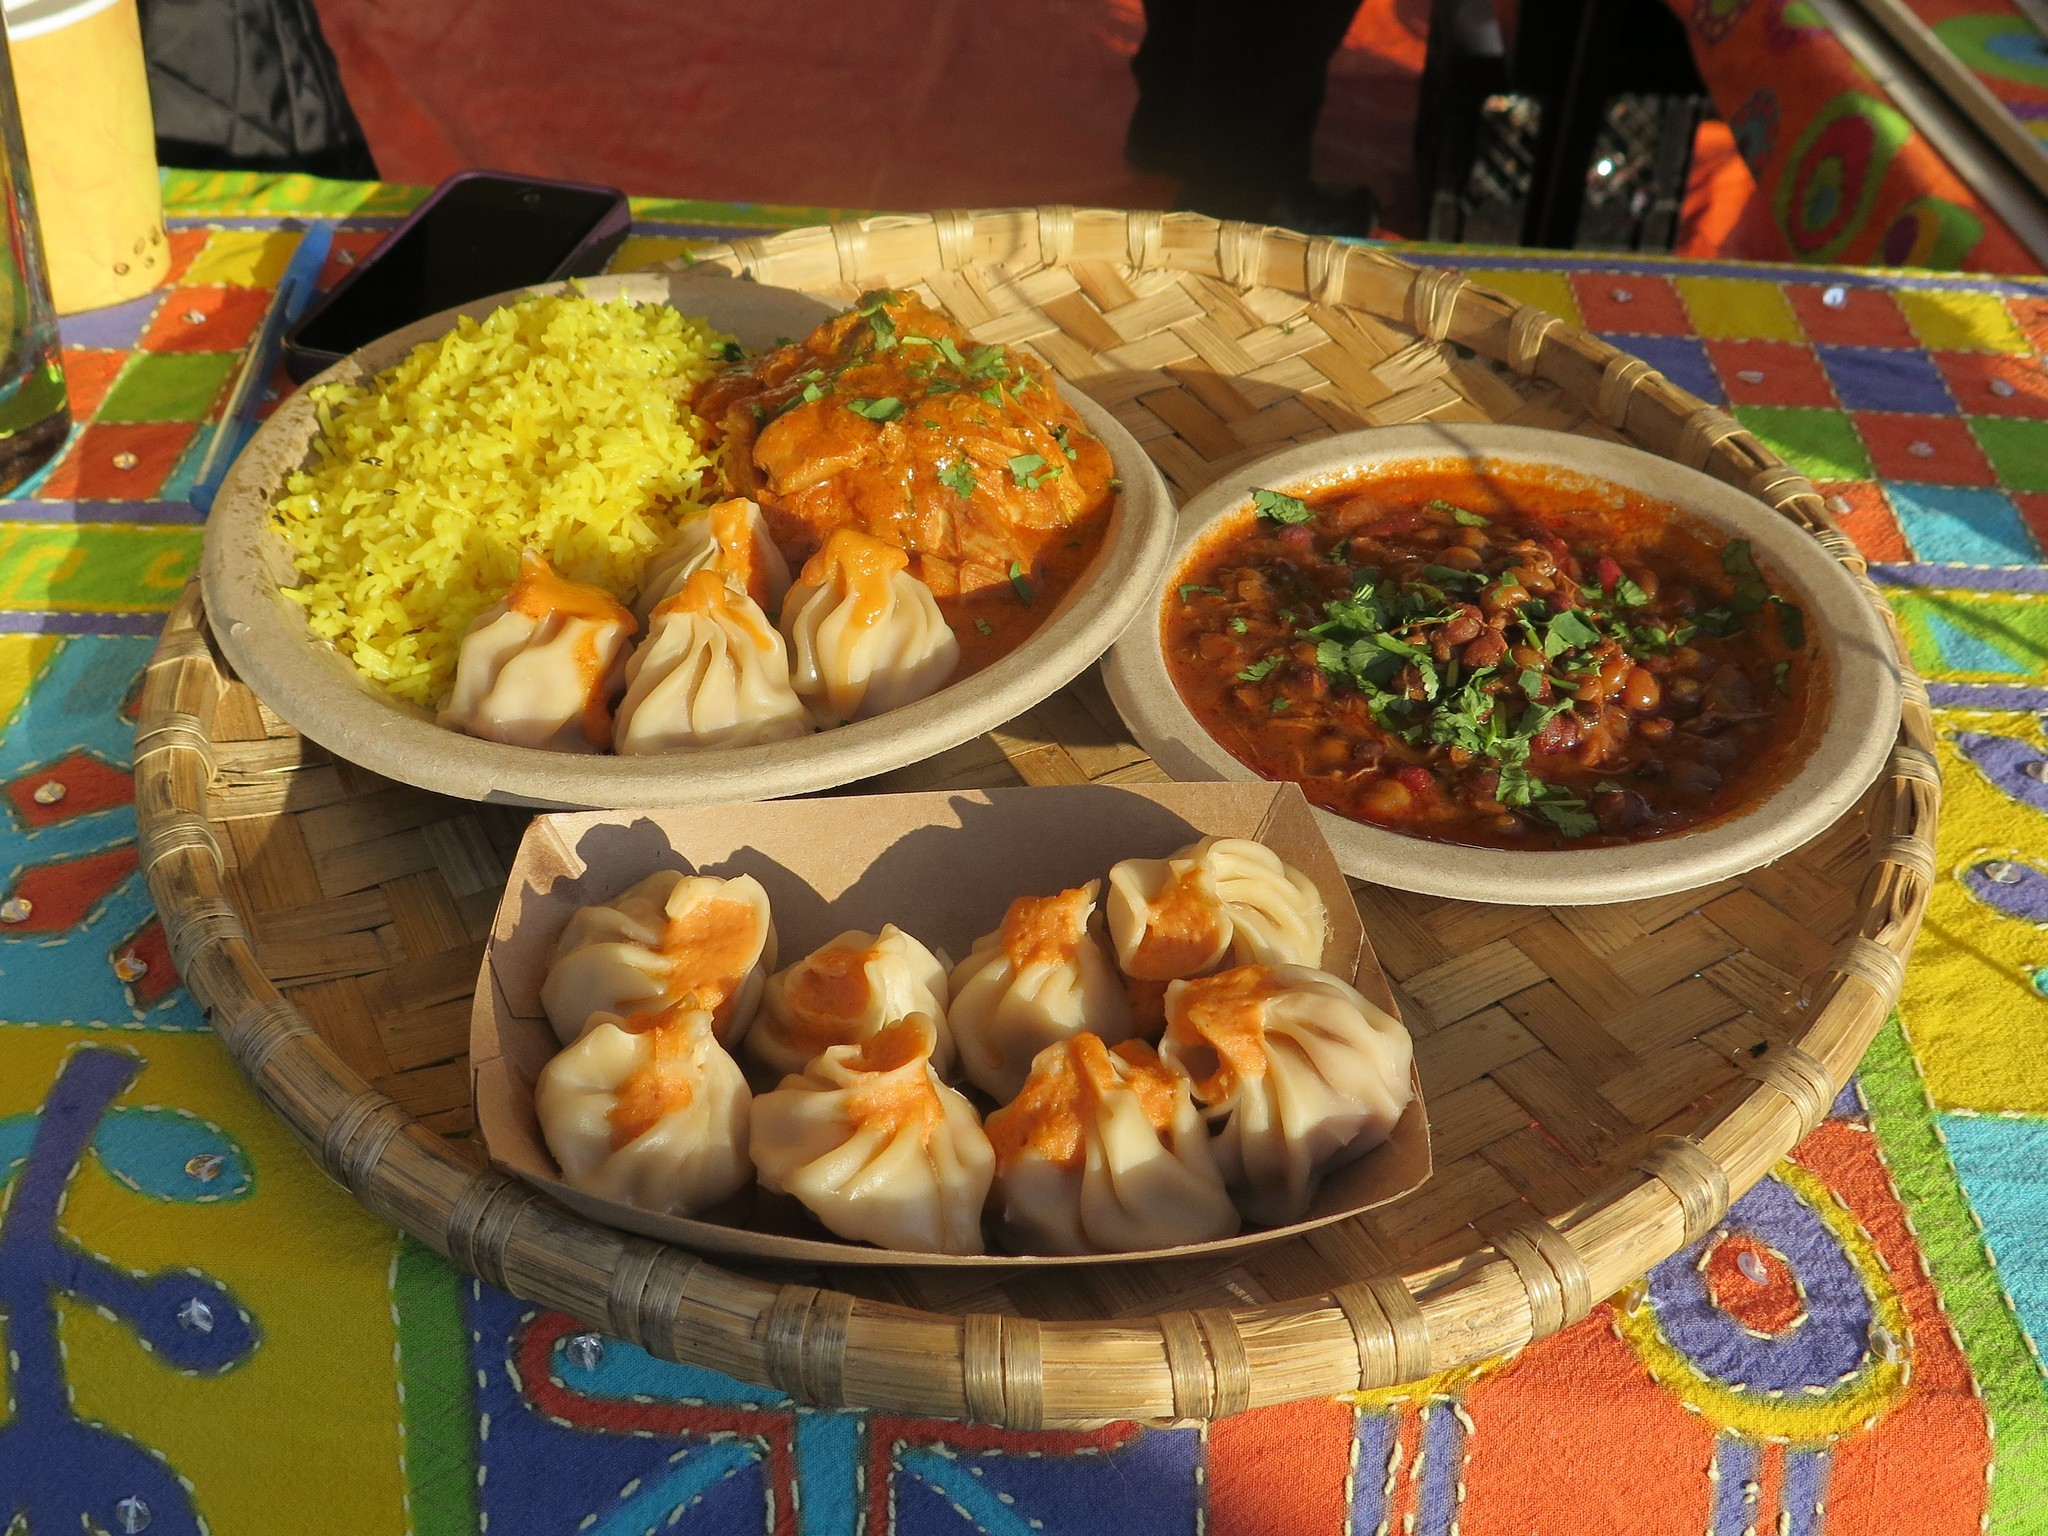 A tray with different plates of dumplings and curries on a colorful table cloth